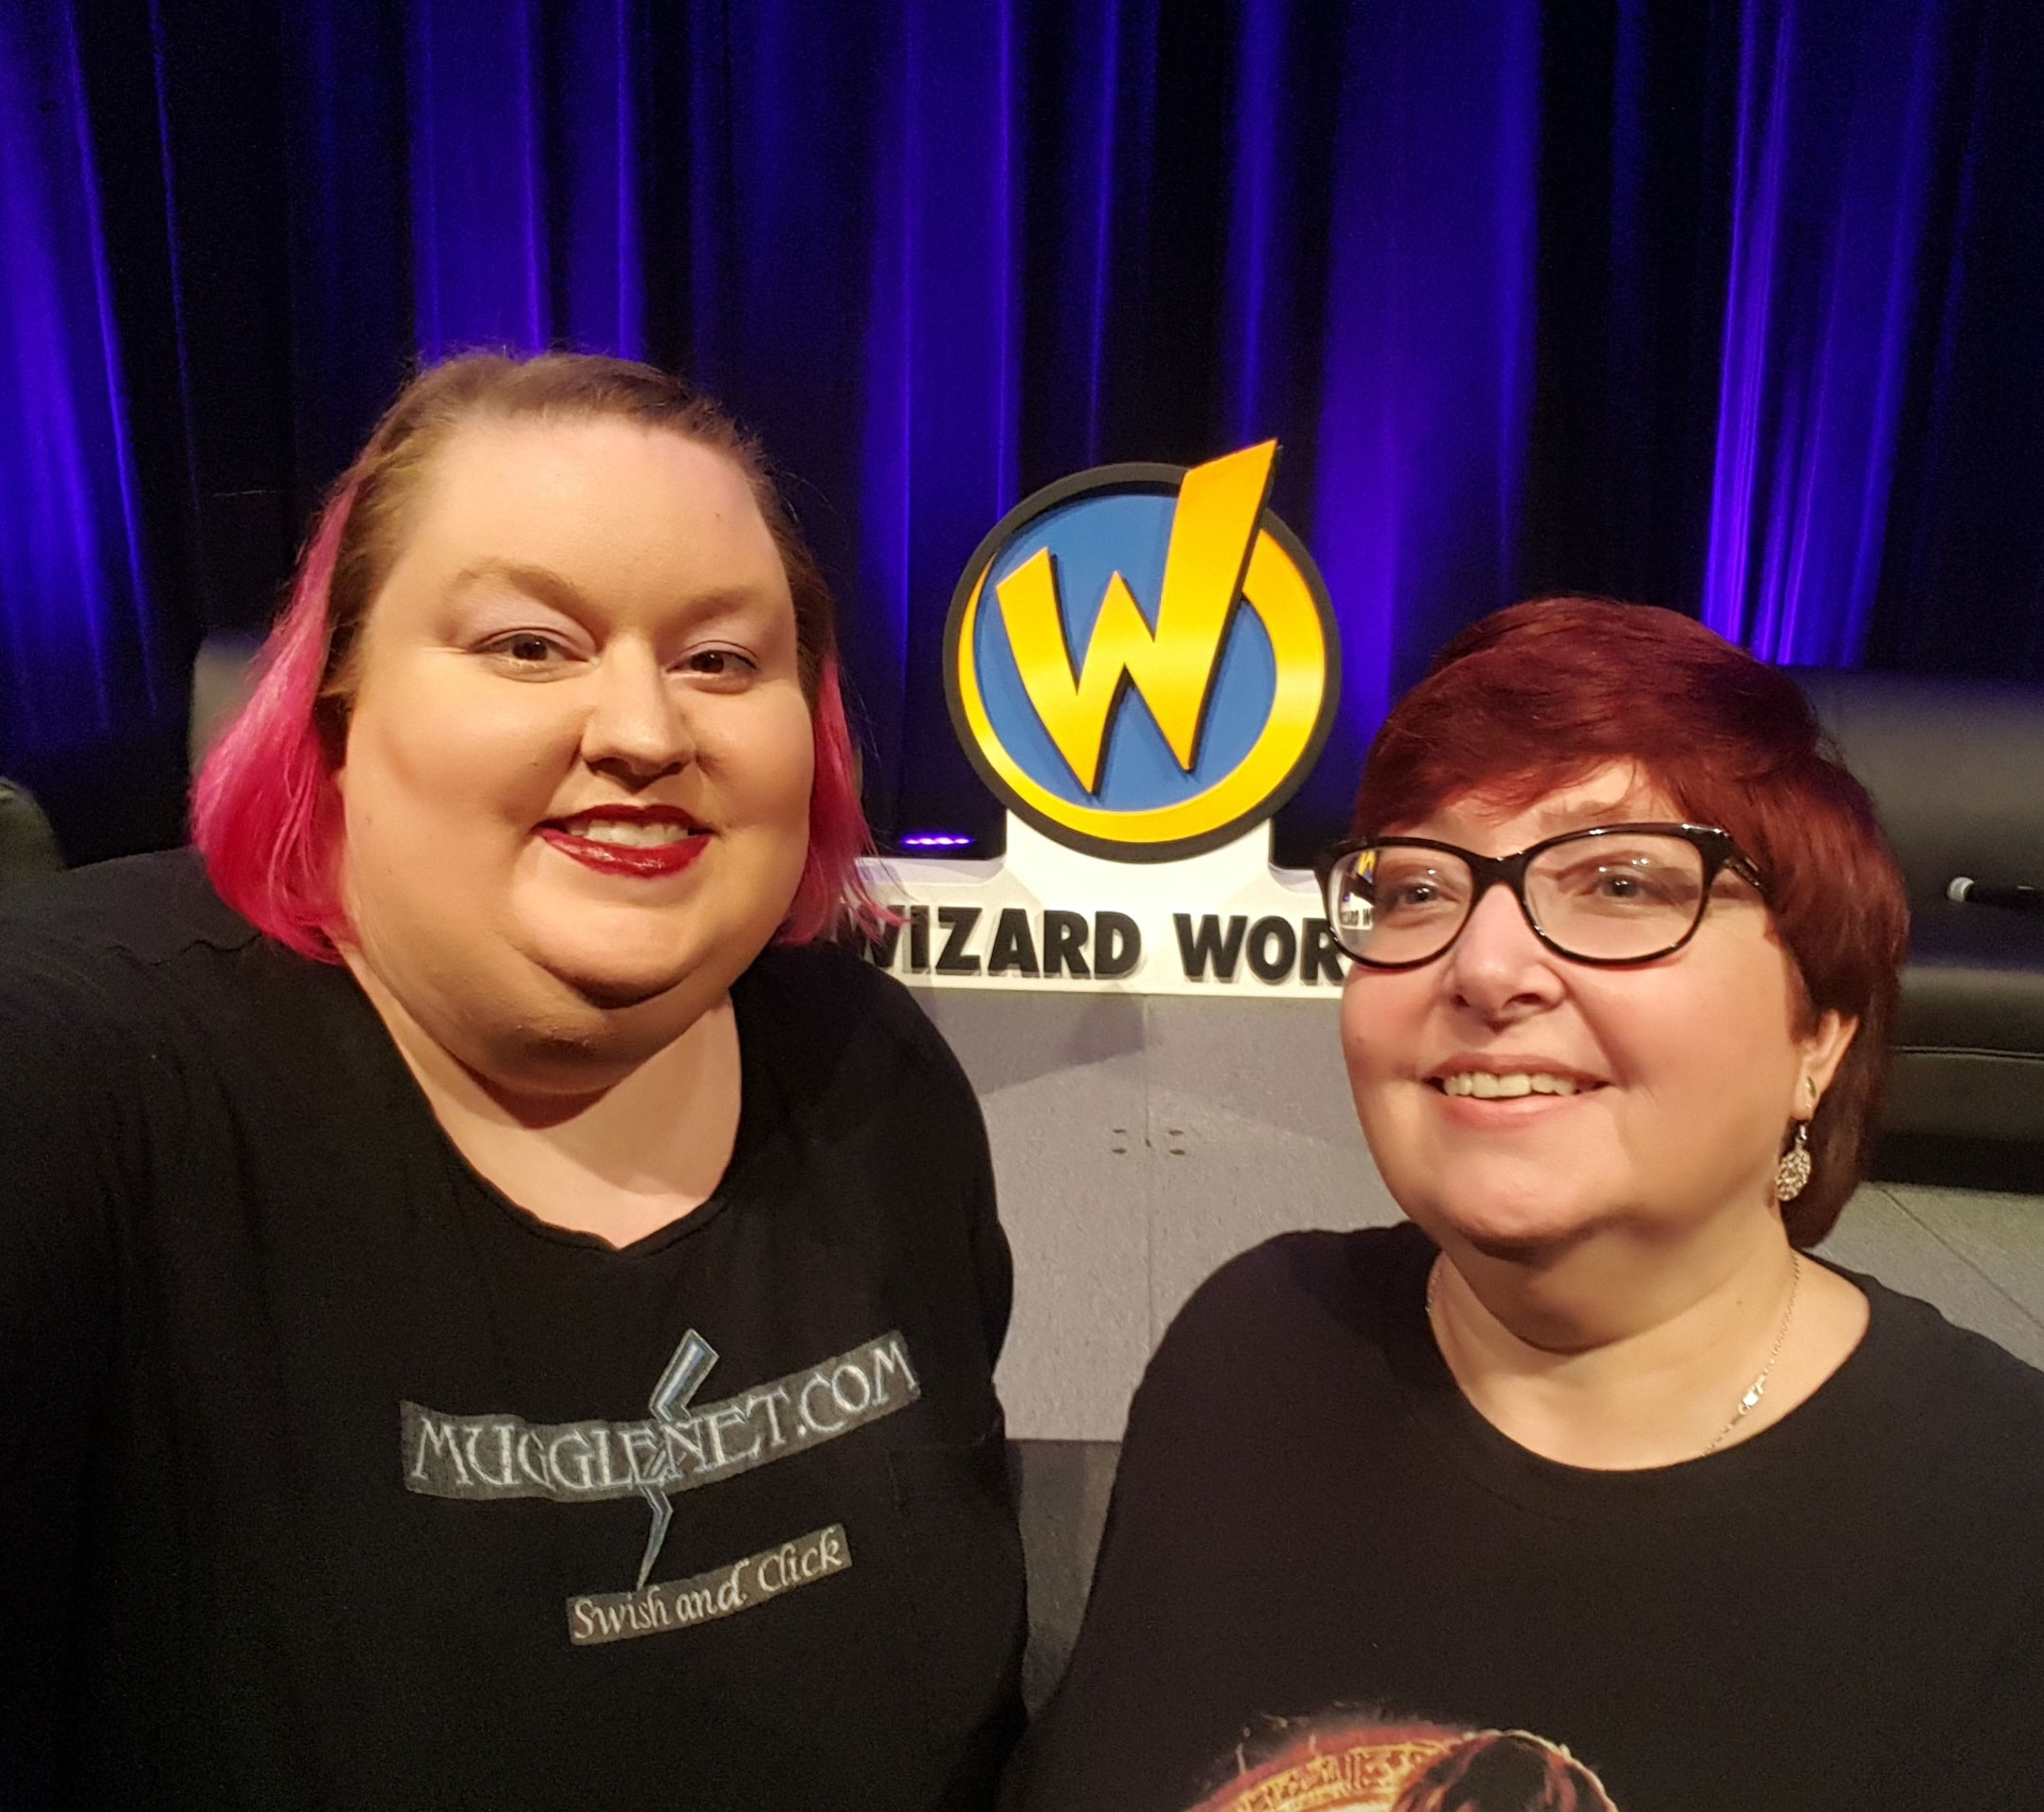 Aimee and Michele at Wizard World Portland 2018.